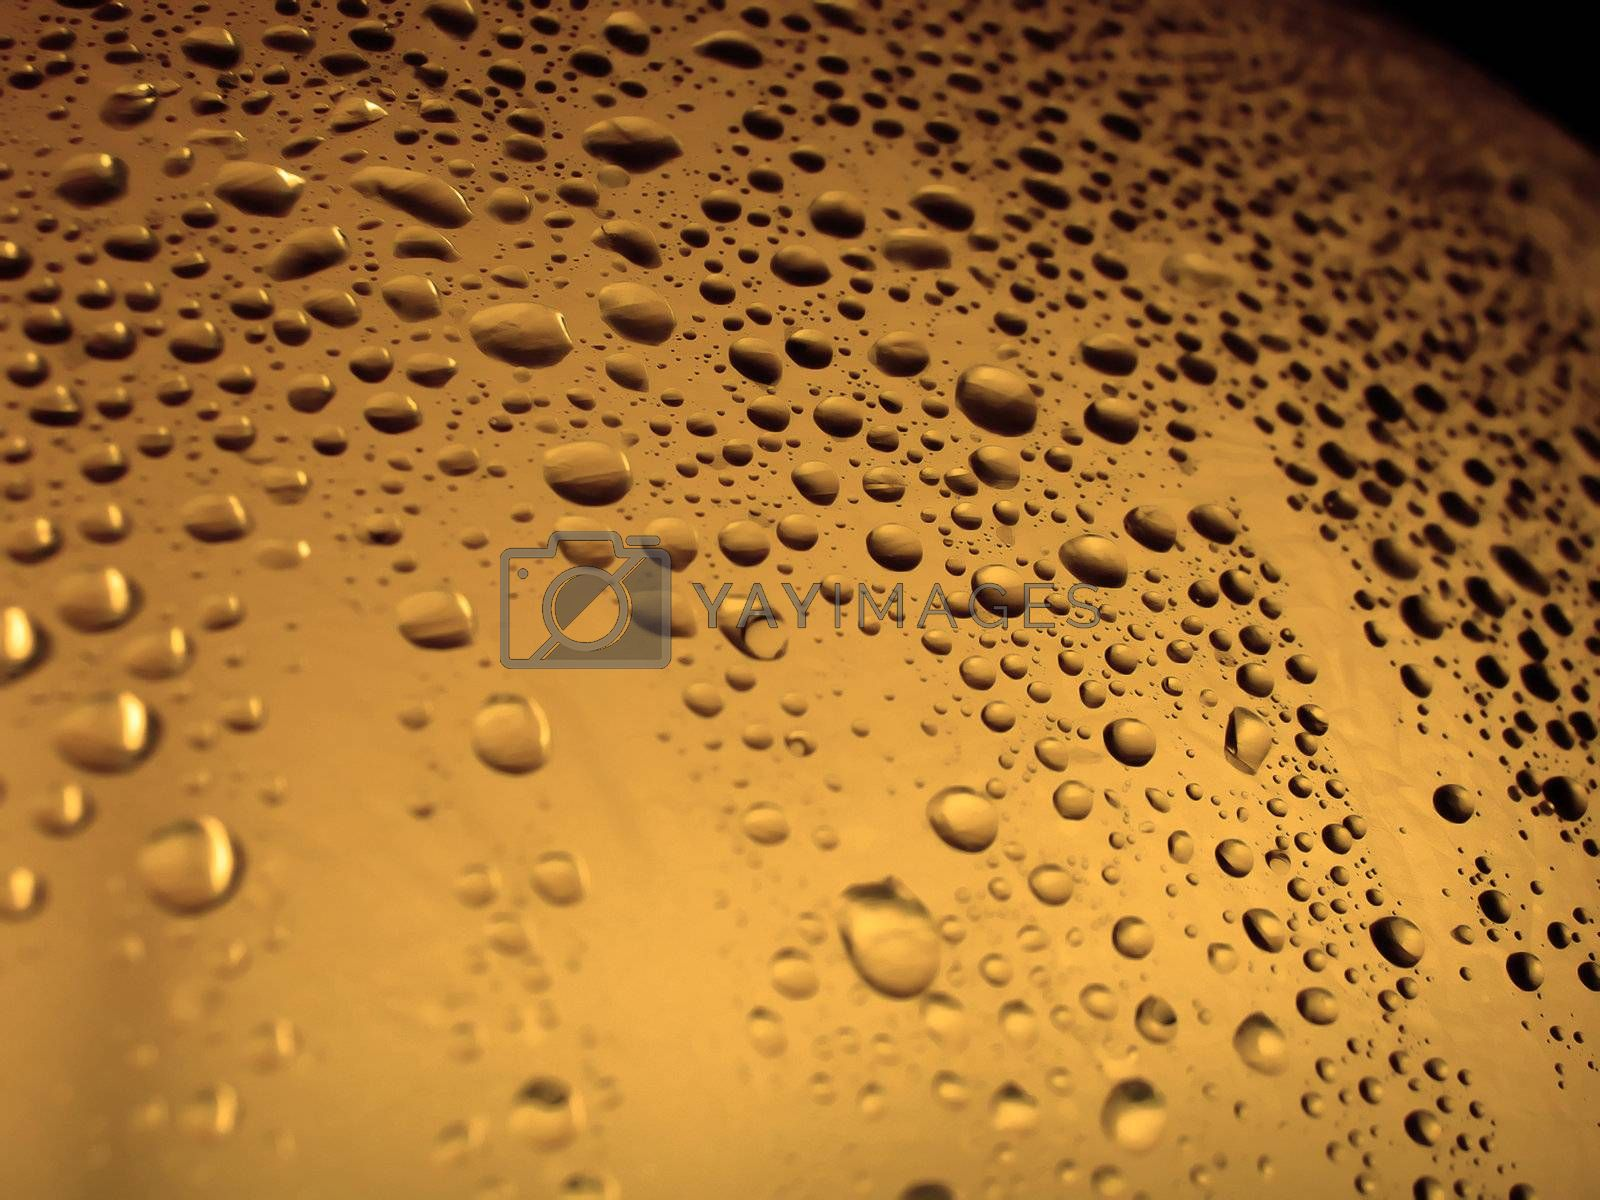 Water droplets on a plastic surface with a orange tone.